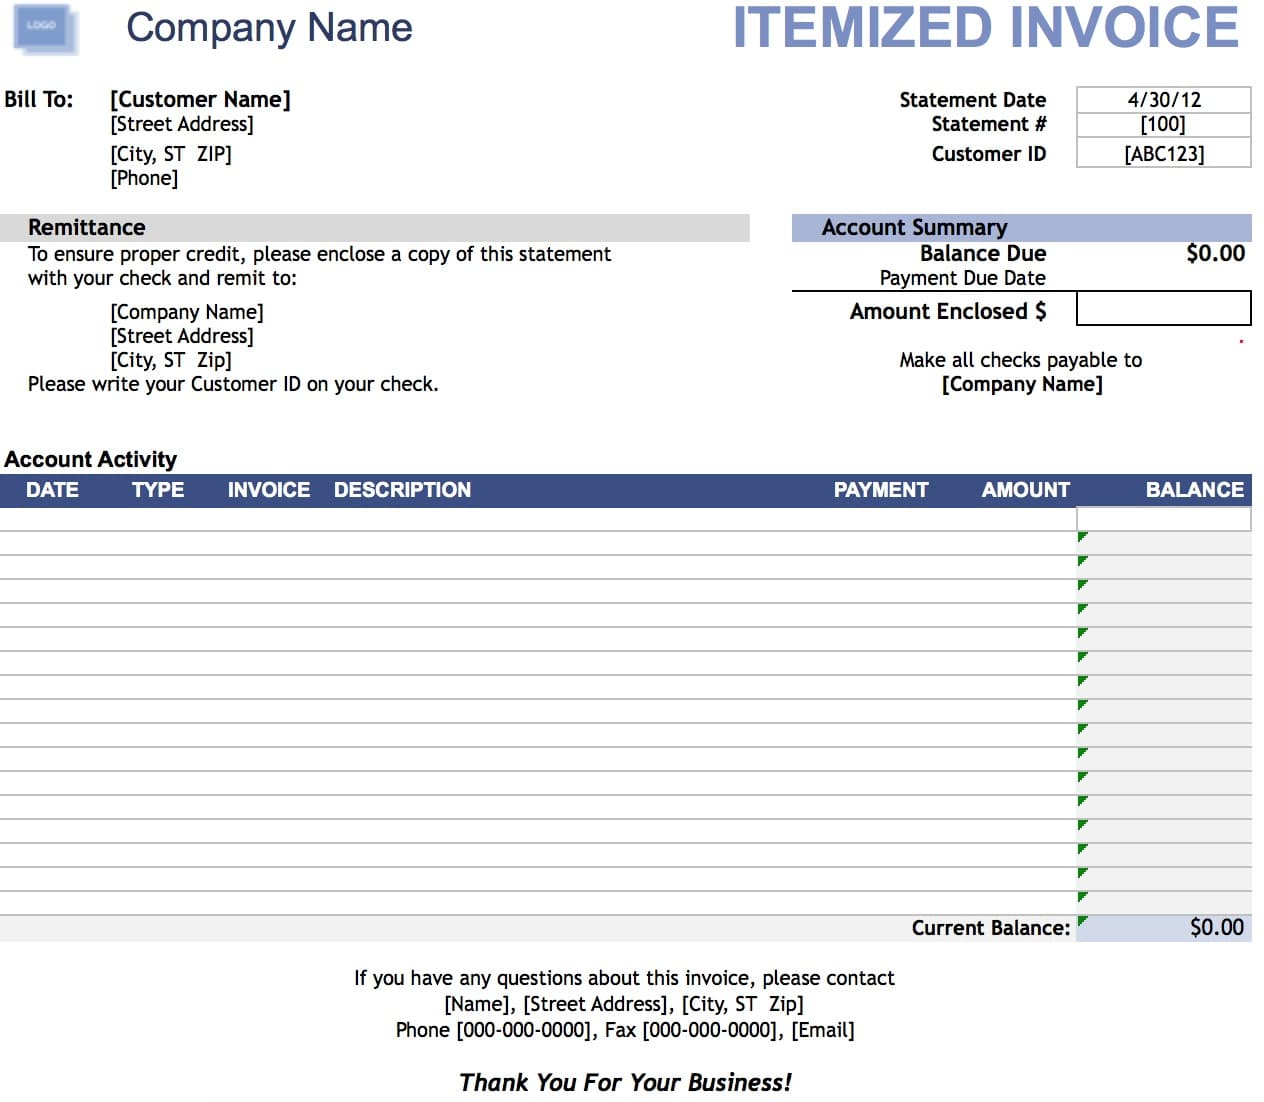 Free Itemized Invoice Template Excel PDF – Itemized Receipt Template